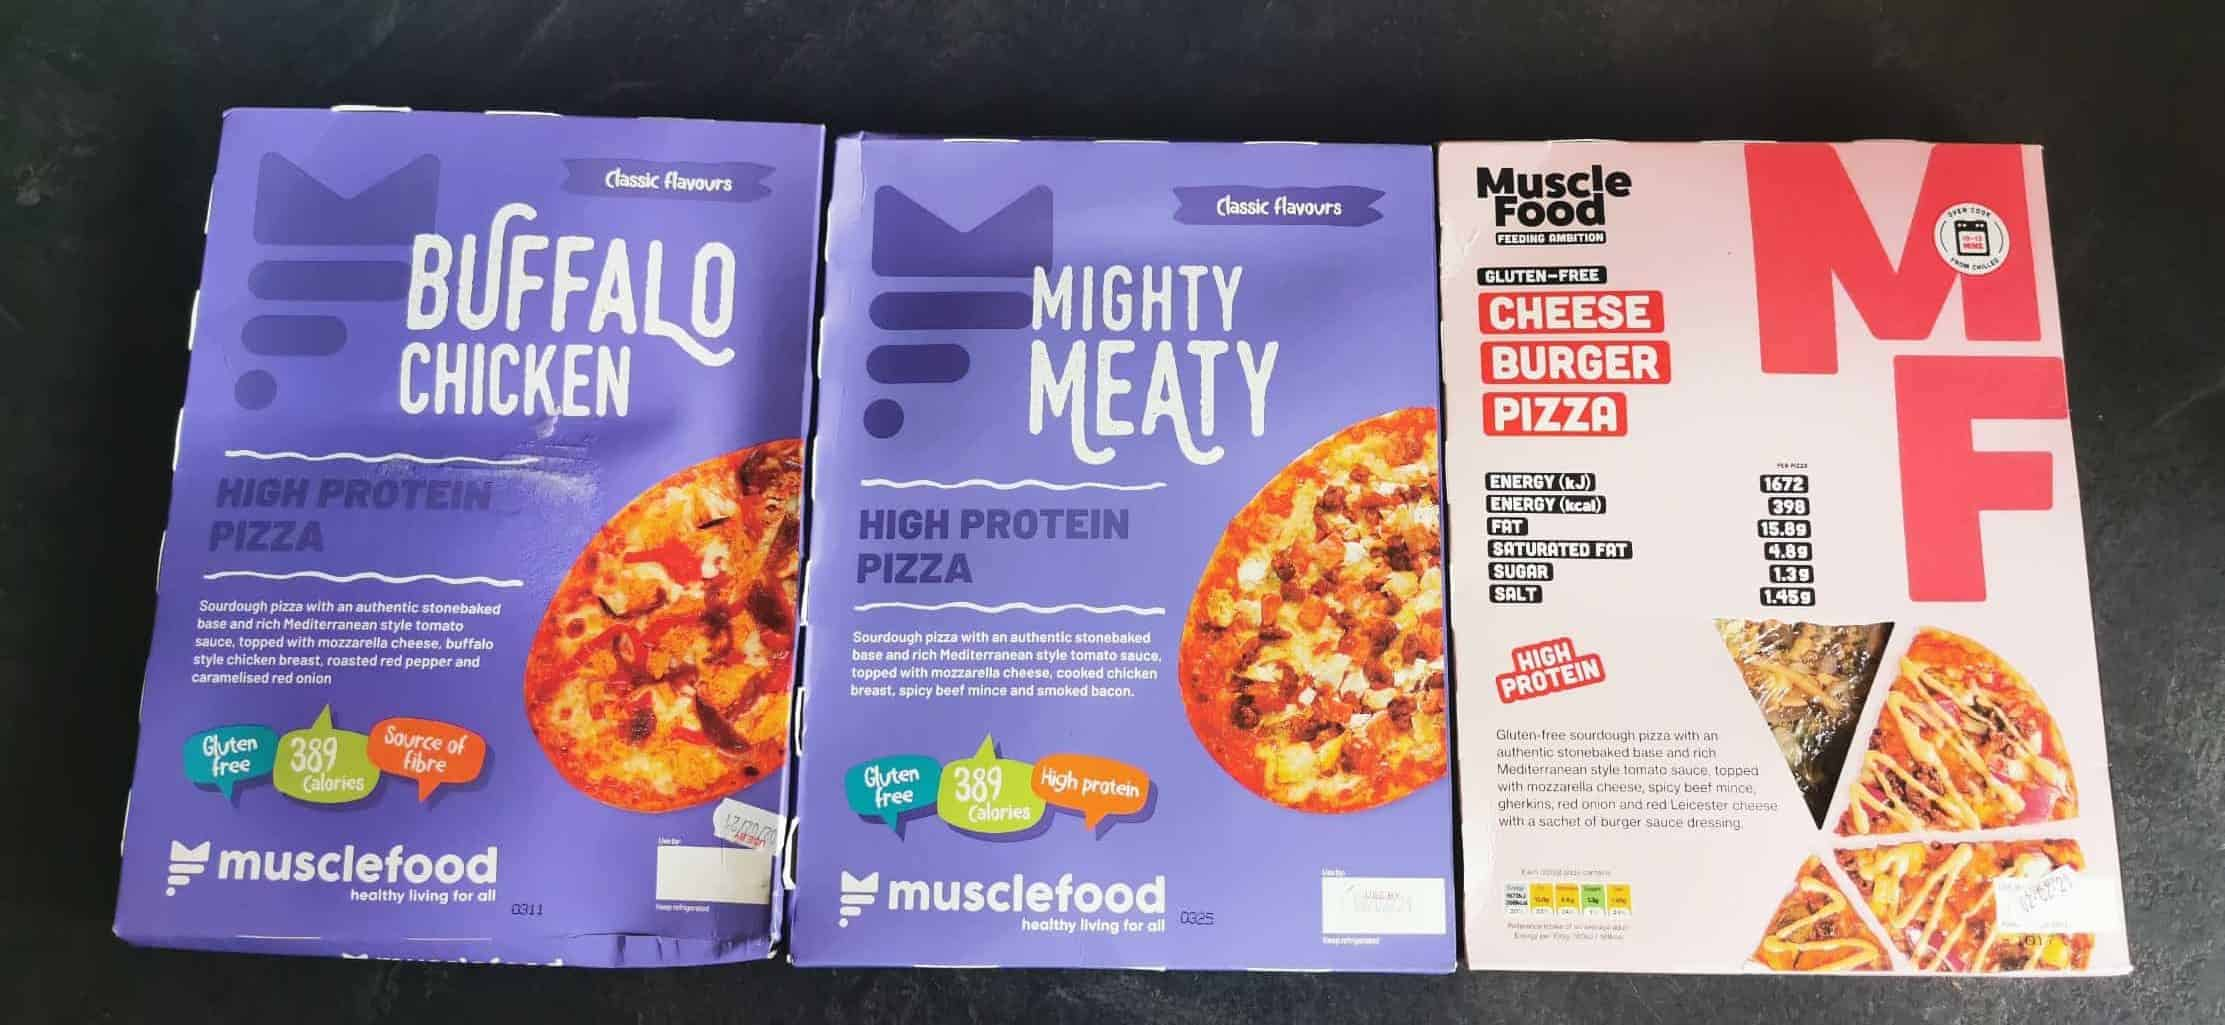 MuscleFood Review Pizza